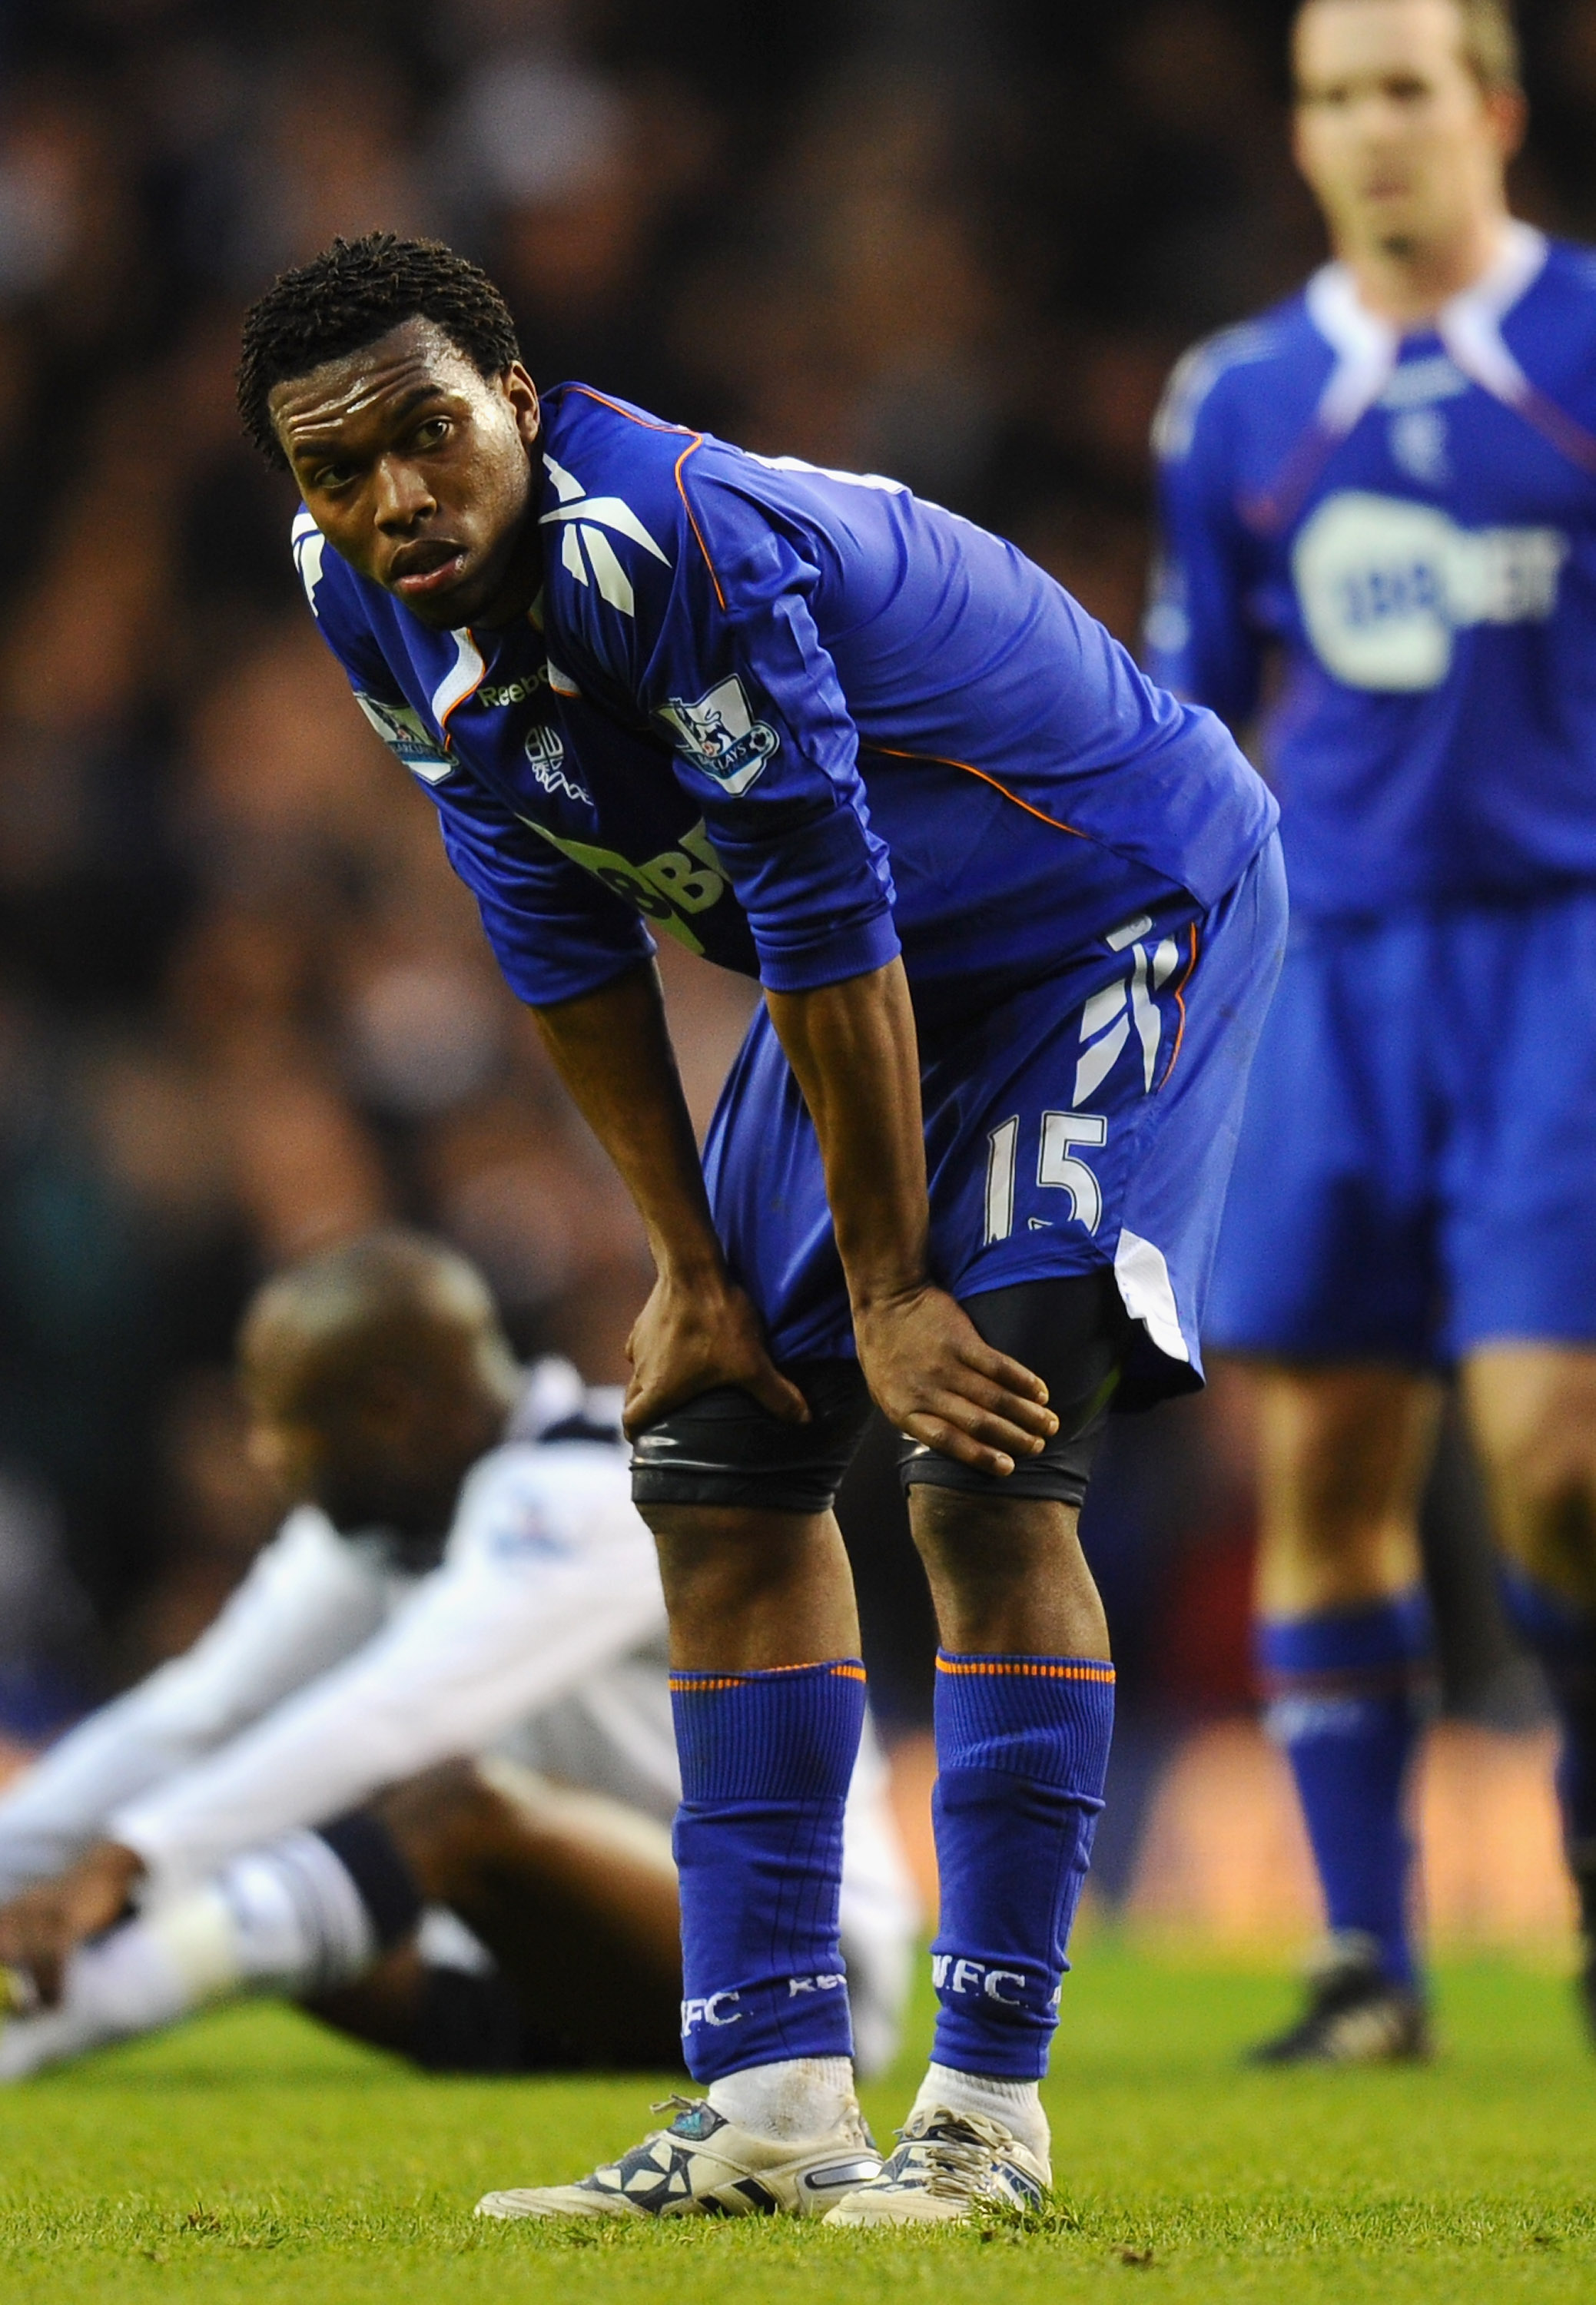 LONDON, ENGLAND - FEBRUARY 05:  Daniel Sturridge of Bolton Wanderers looks dejected after defeat in the Barclays Premier League match between Tottenham Hotspur and Bolton Wanderers at White Hart Lane on February 5, 2011 in London, England.  (Photo by Mike